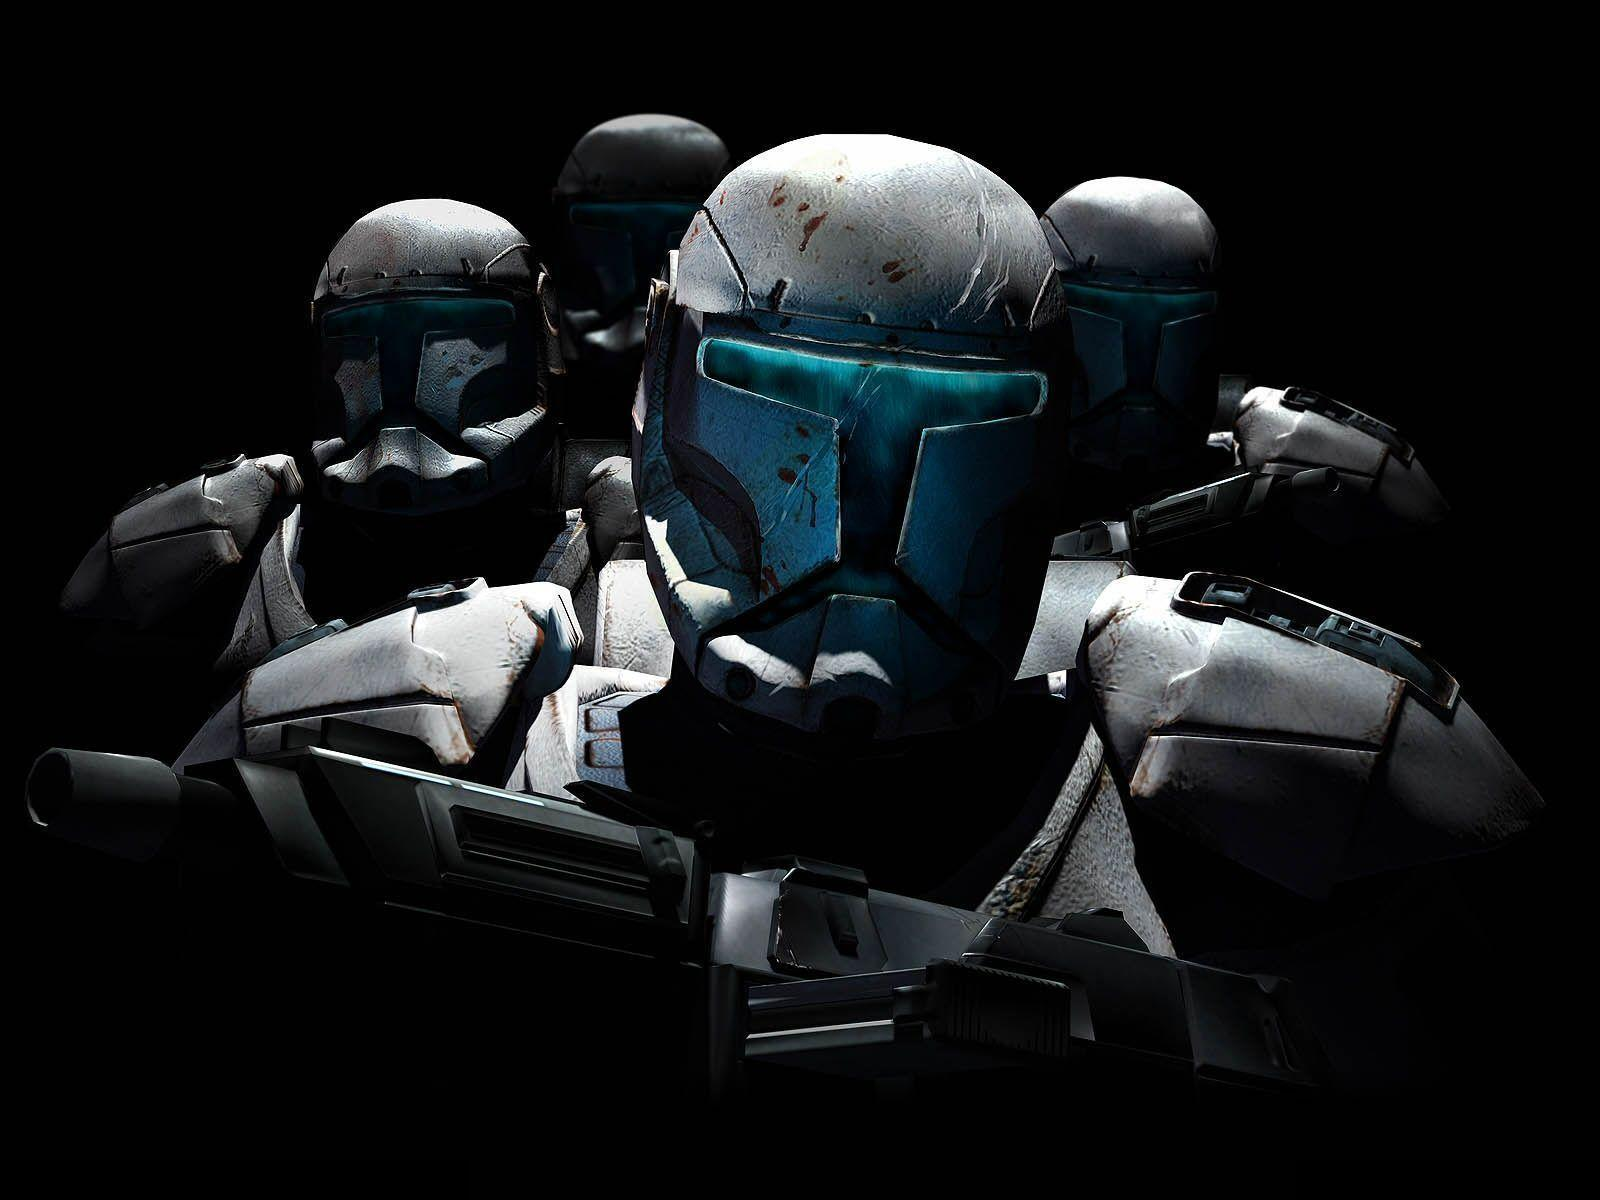 Star Wars Clones Wallpapers